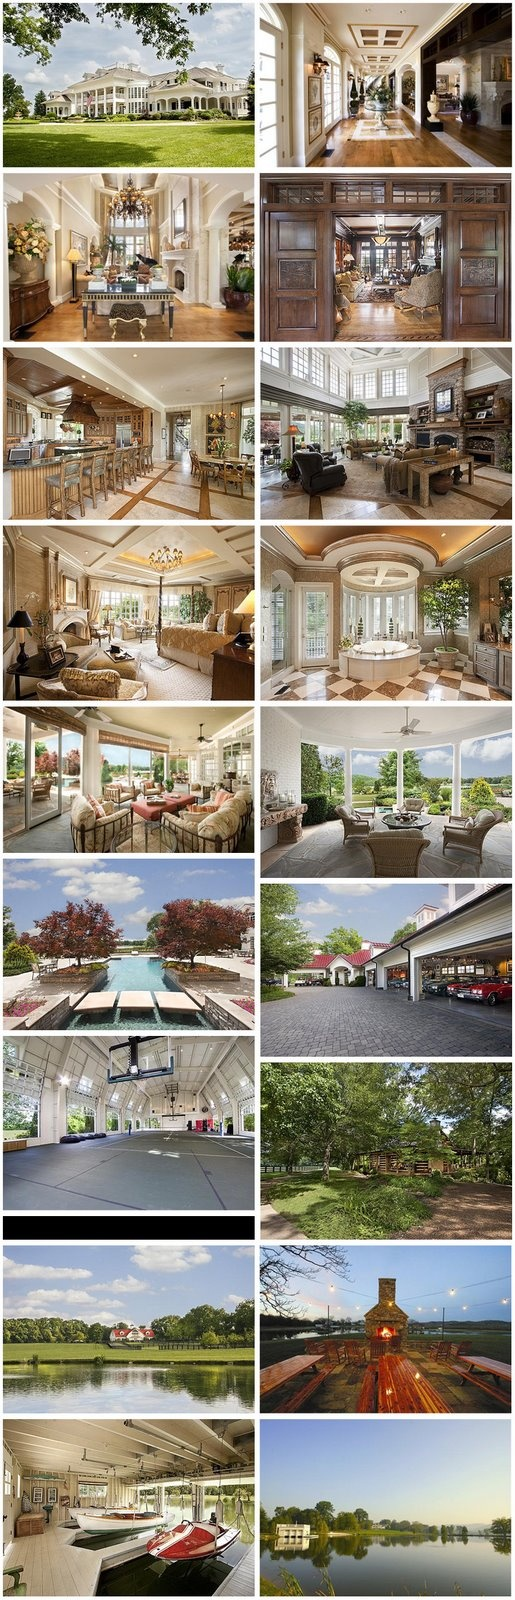 custom luxury home designs. Photos Of Nashville Home Country Singer Alan Jackson As Designed By The  Sater Group In 110 Best Custom Luxury Home Designs The Images On